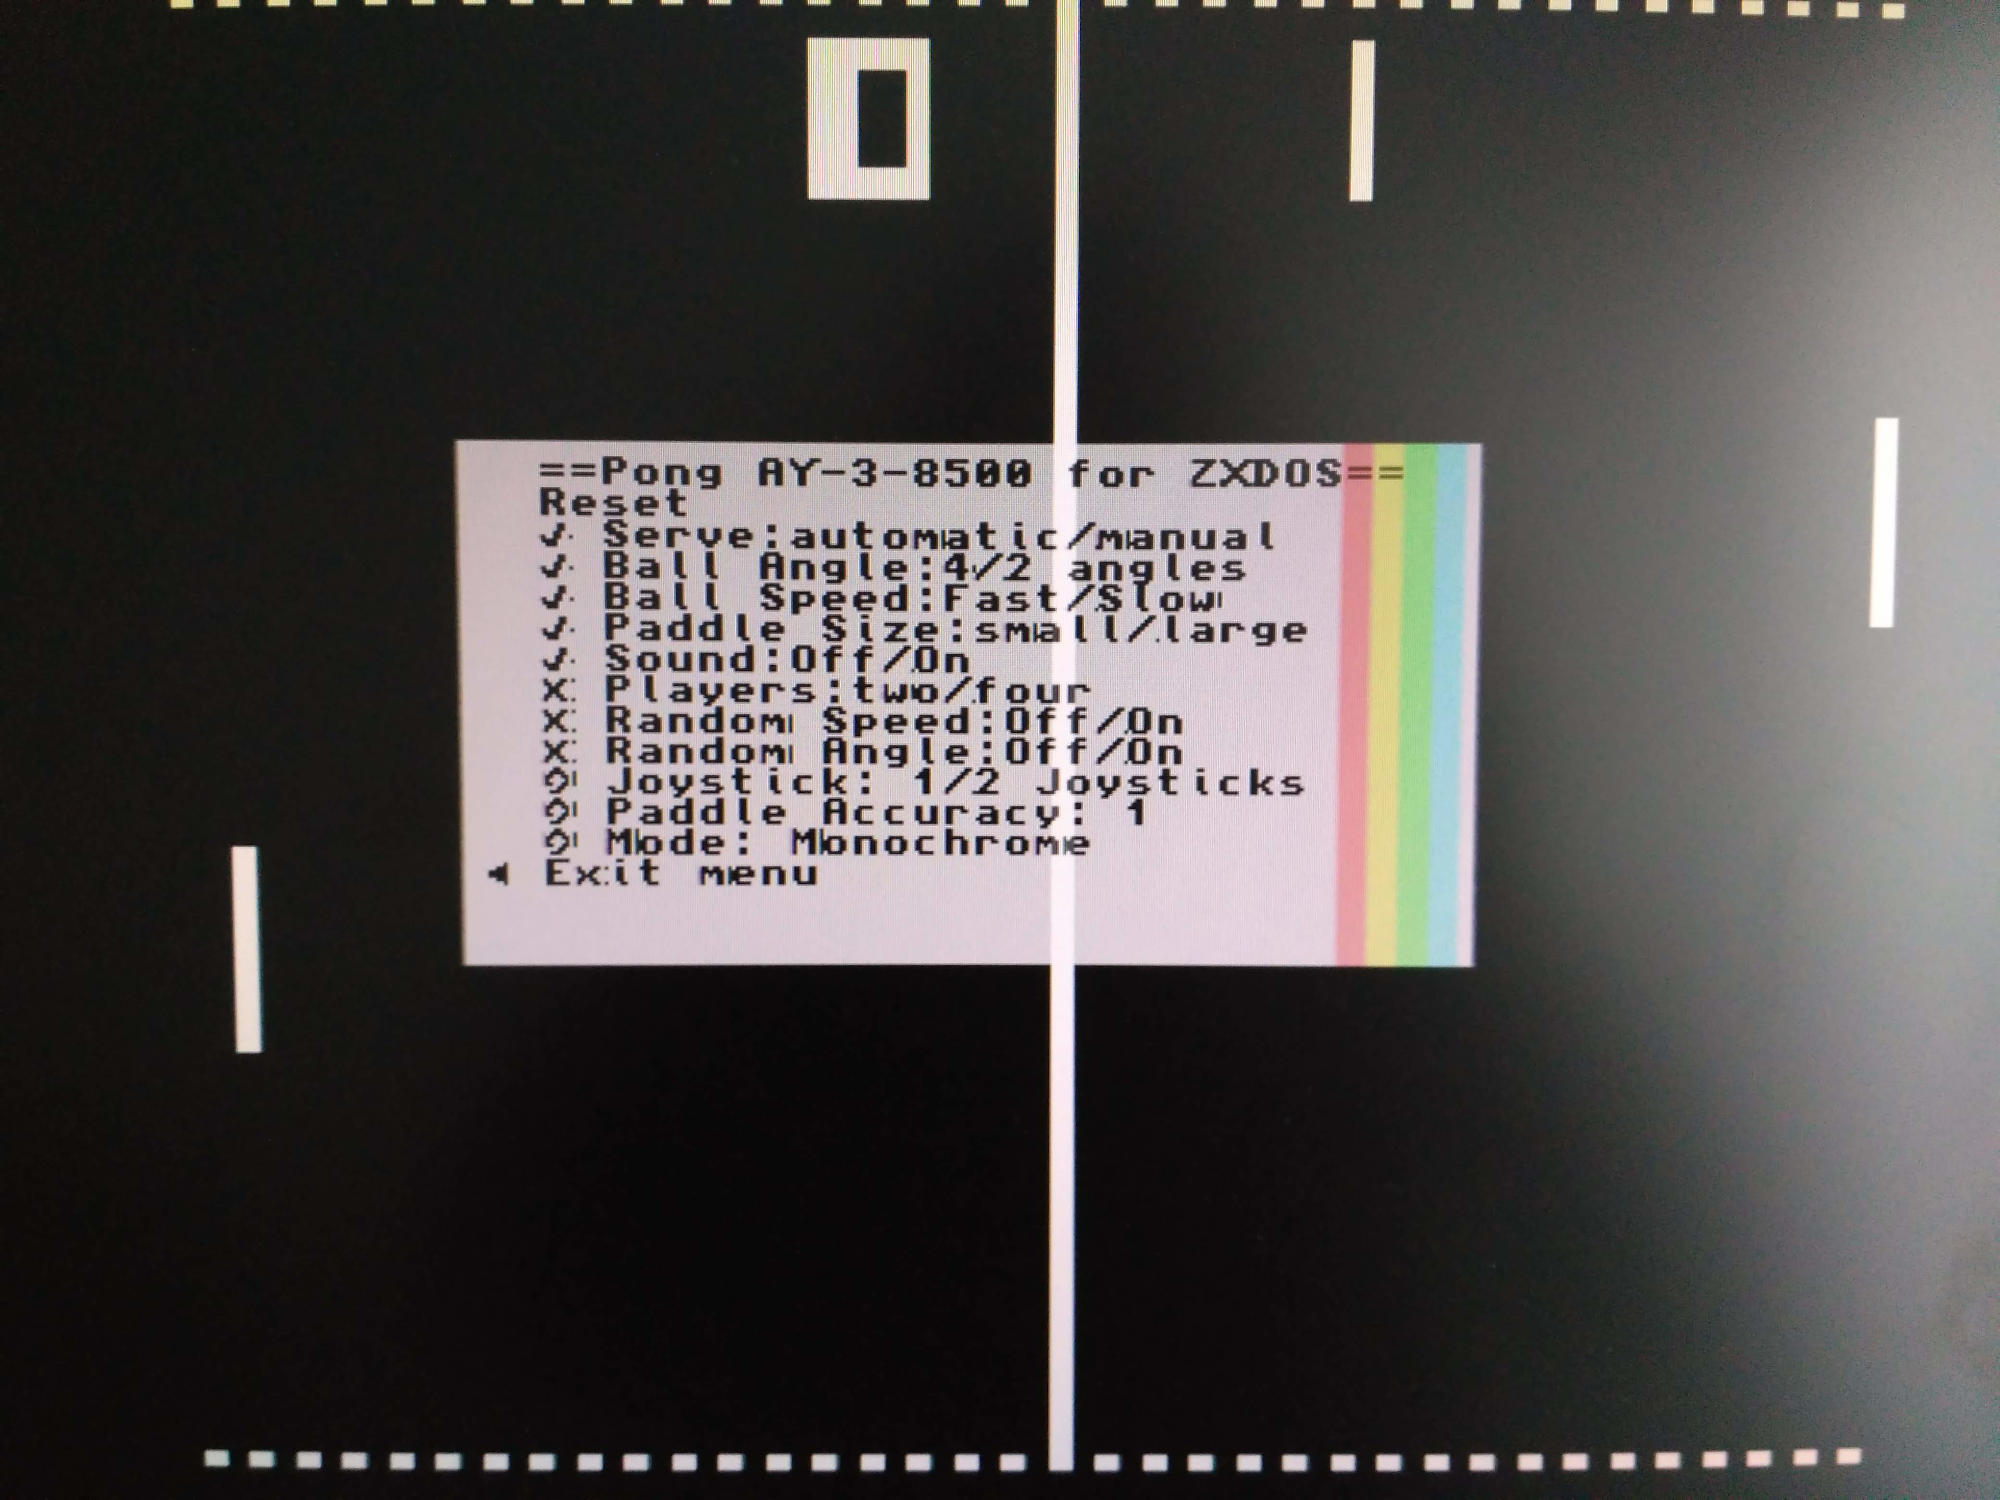 Pong-menu-mini.jpg